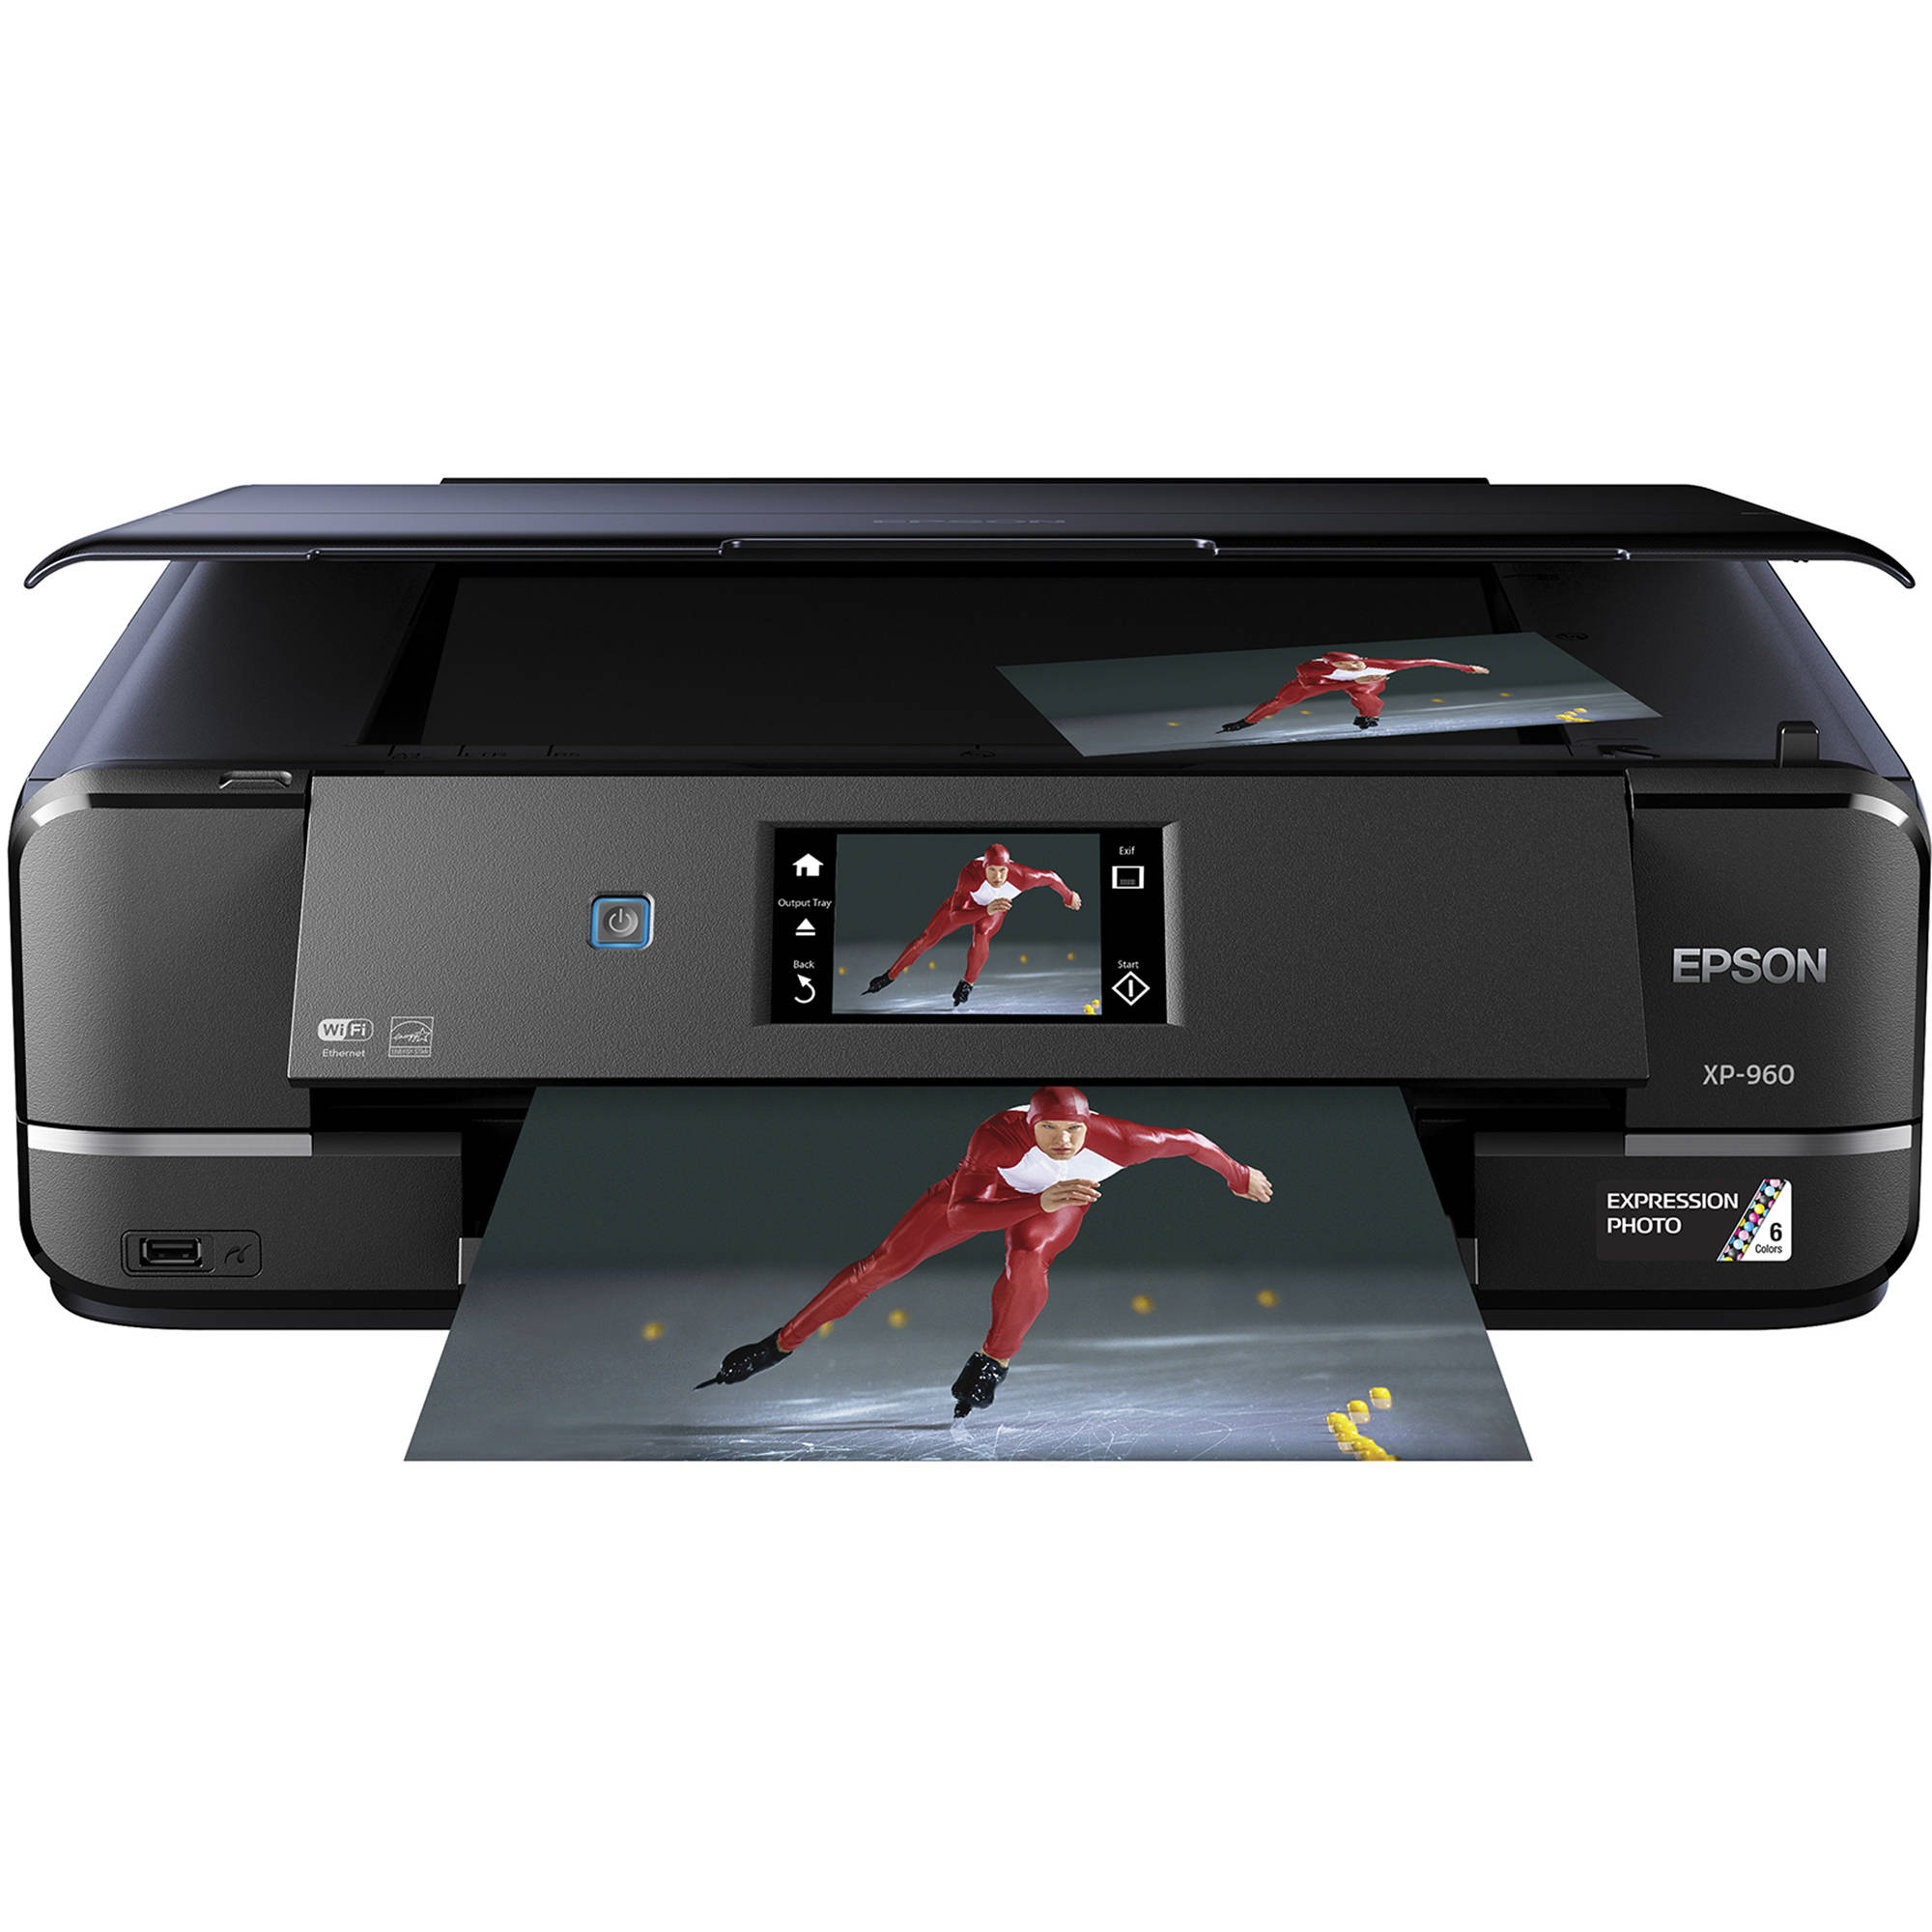 Epson Expression Photo Xp 960 Small In One Inkjet C11ce82201 Bh